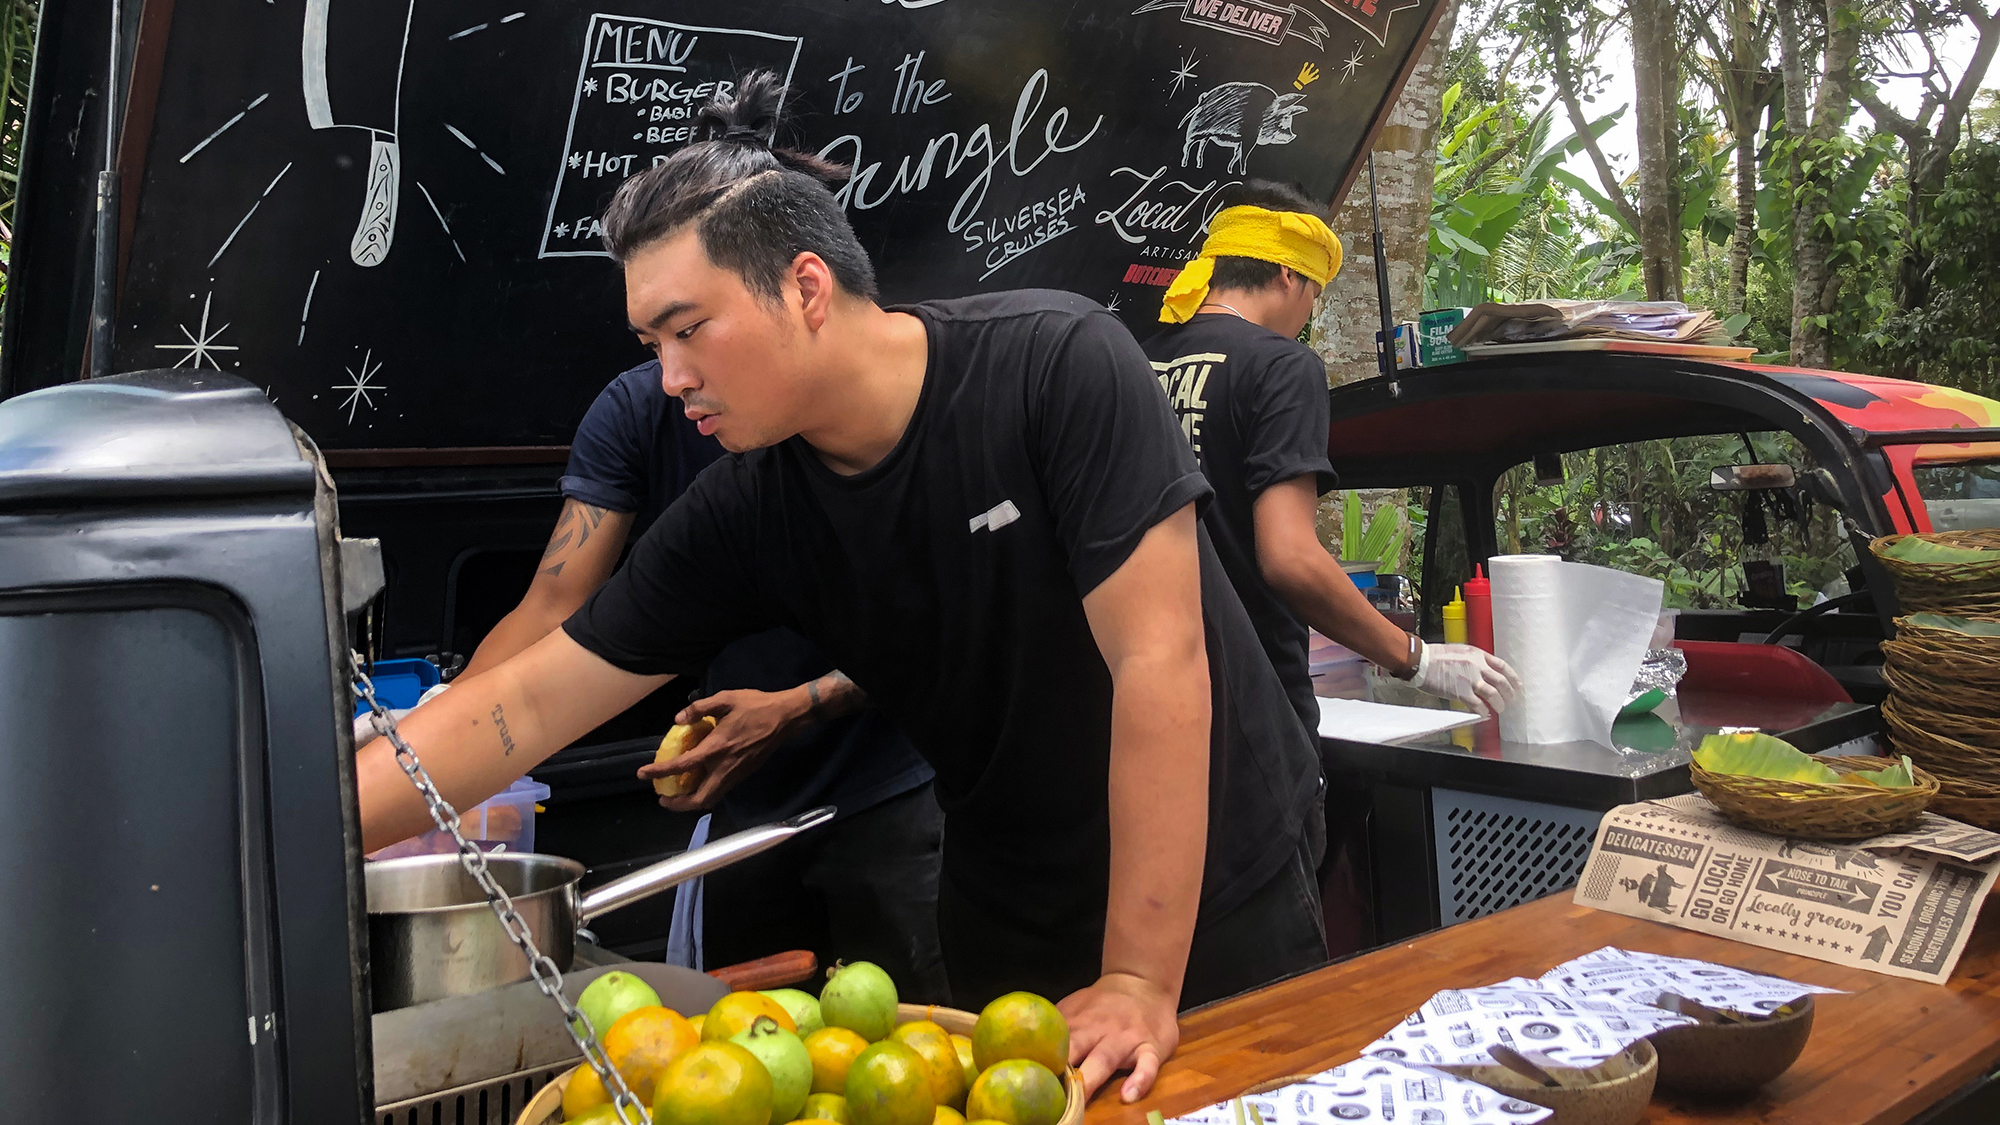 The LocalPartsBali food truck belongs to an artisanal butcher shop started by the owners of the Locovore restaurant in Ubud. It is dedicated to farm-to-table cuisine and snout-to-tail butchery.